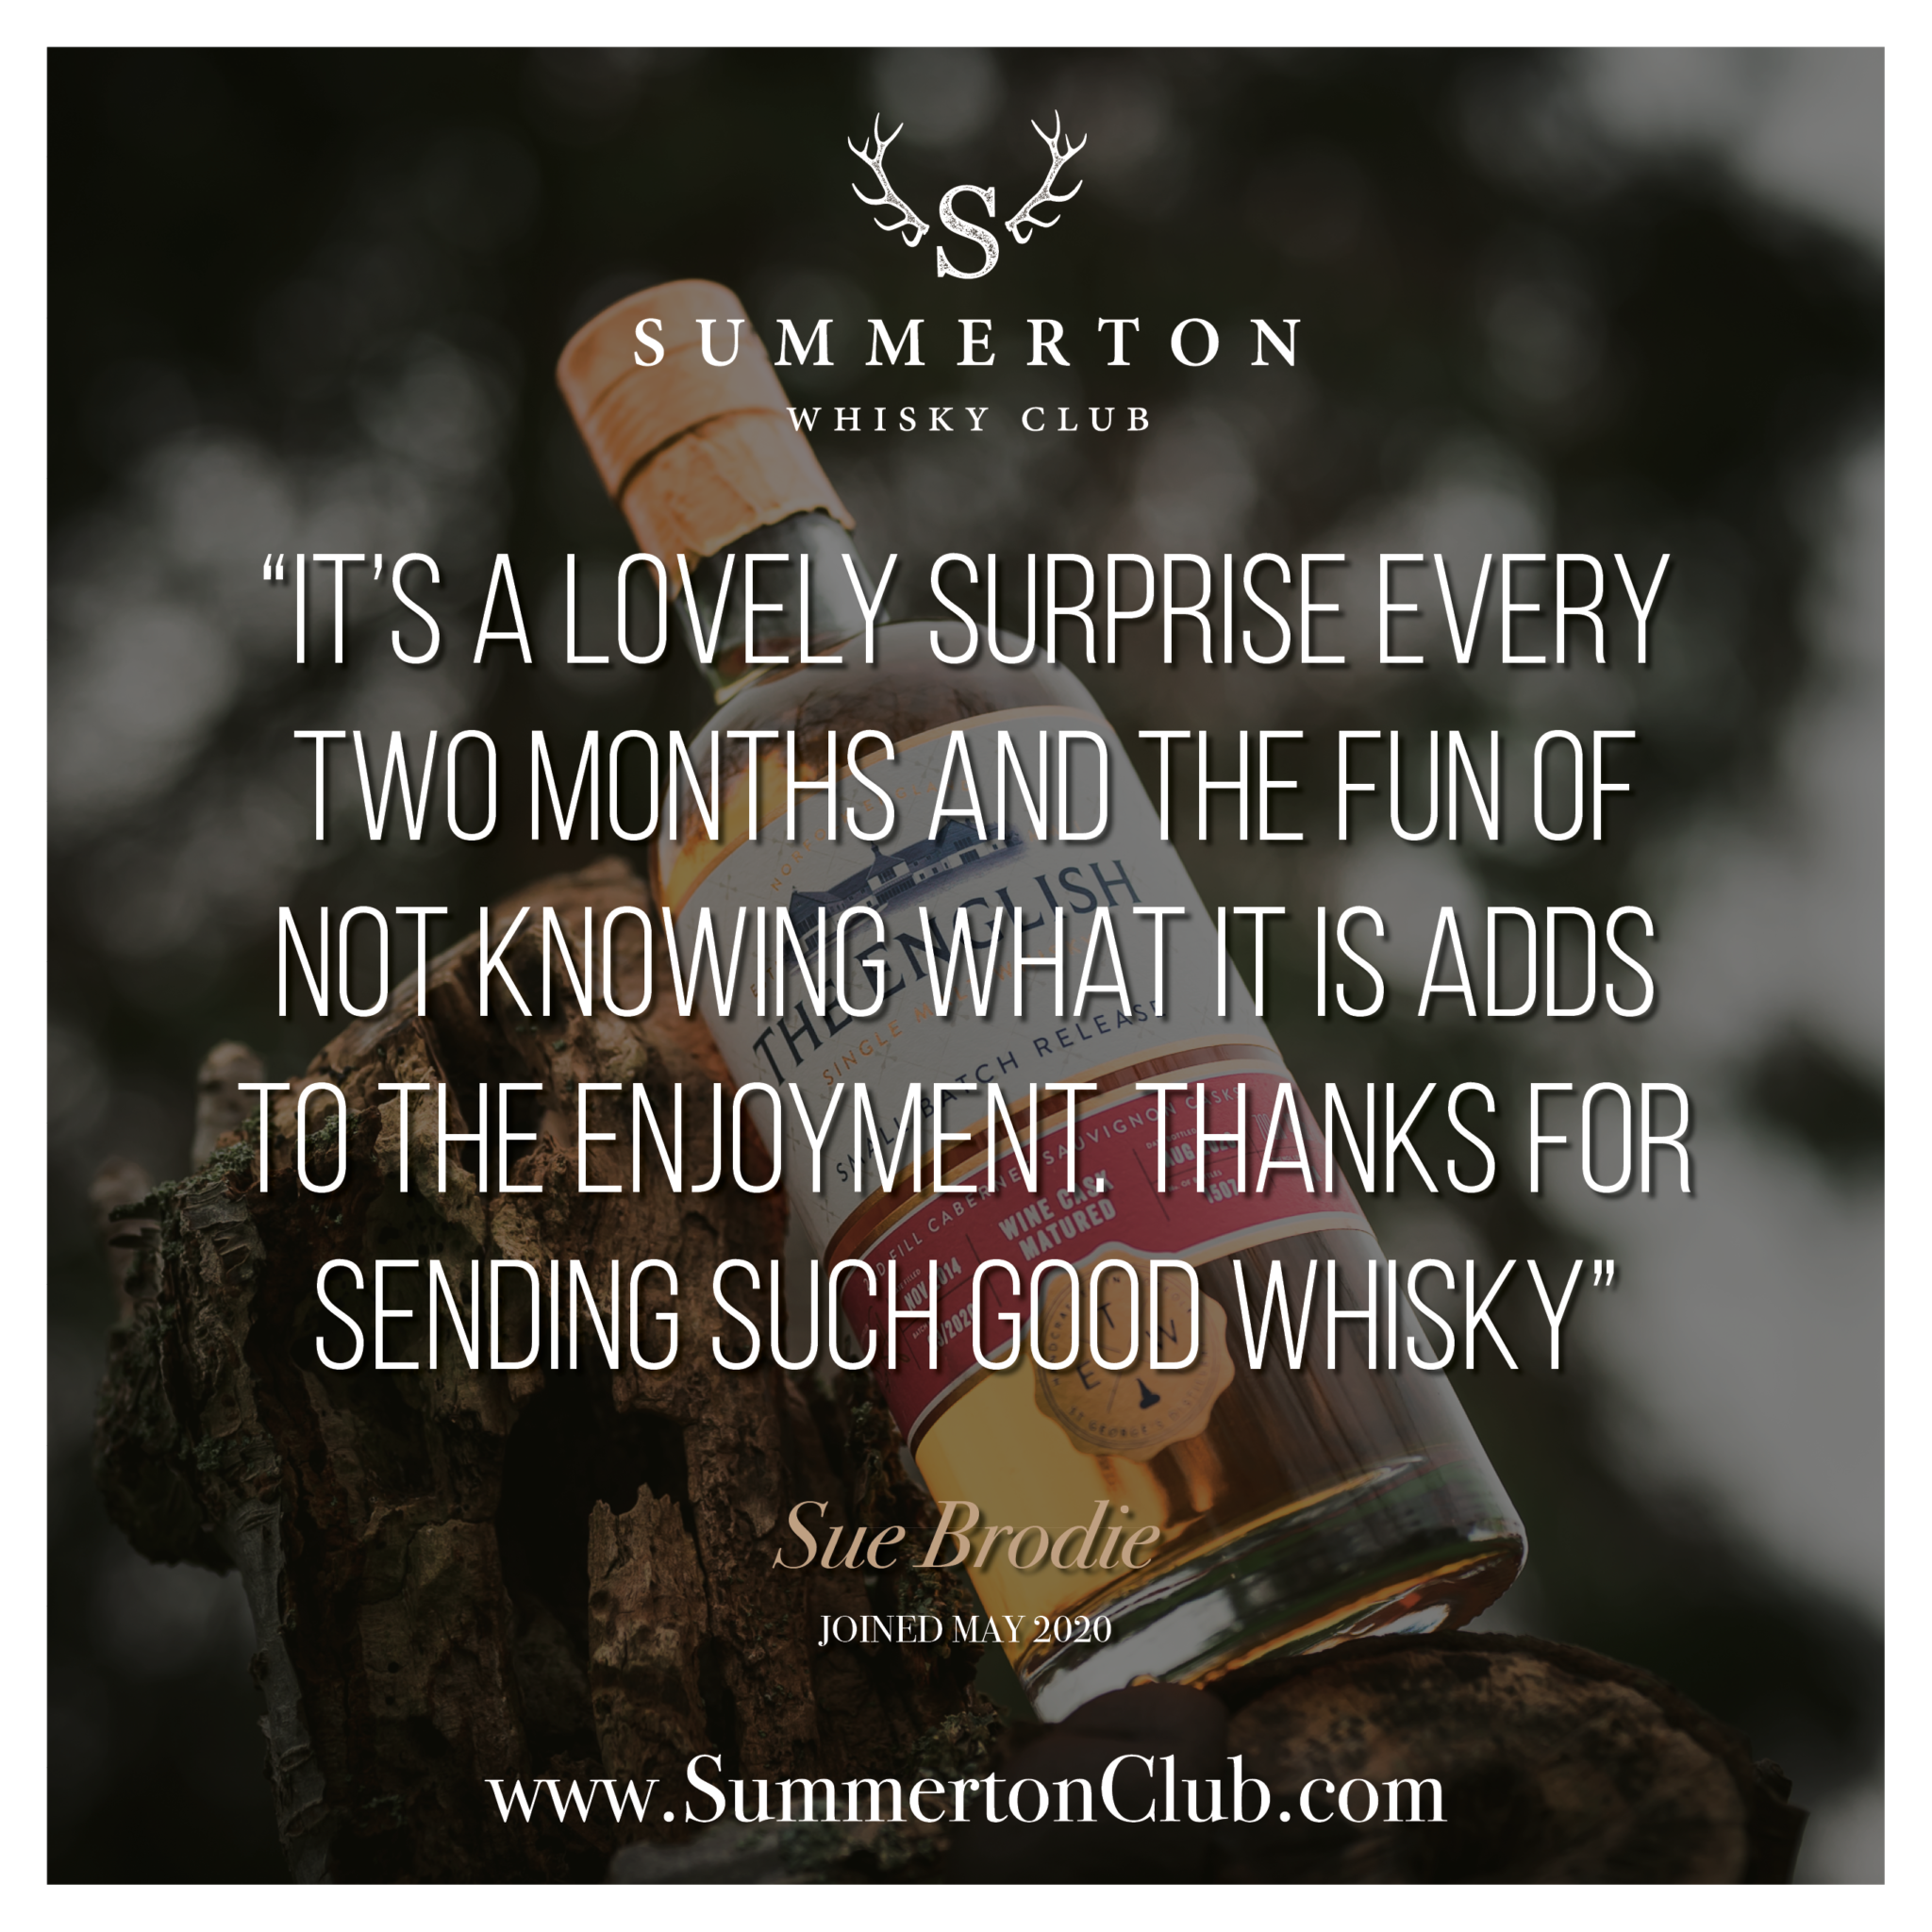 Member Reviews, Summerton Whisky Club